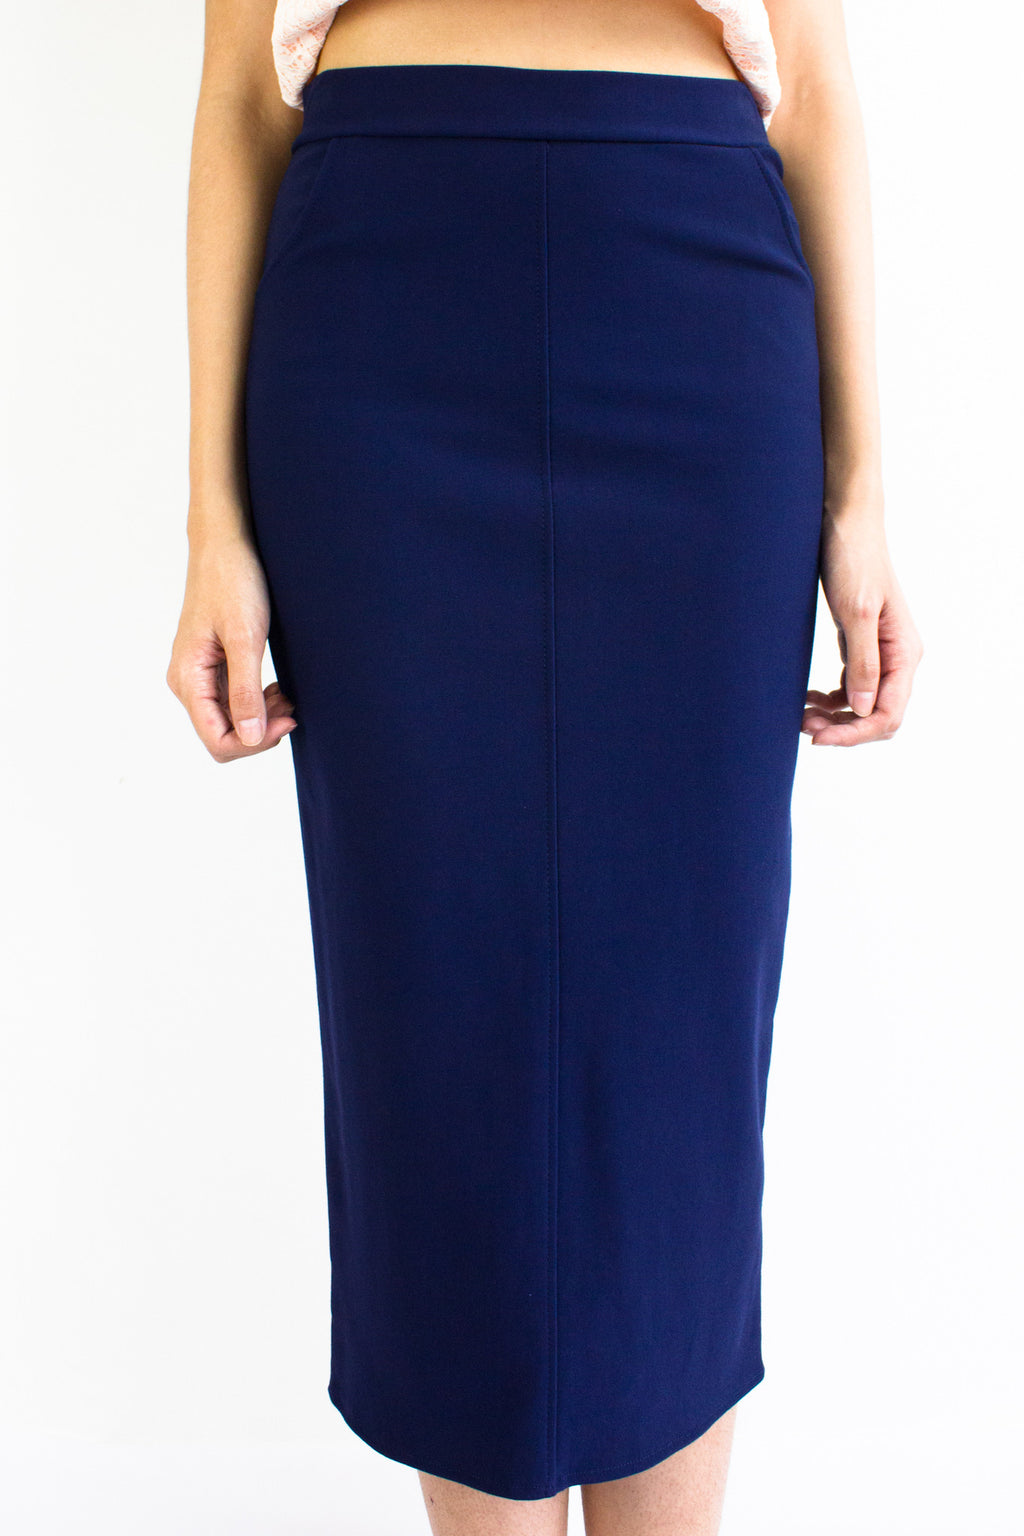 Pocketful Fitted Midi Skirt in Navy Blue - BOTTOMS - Peep Boutique